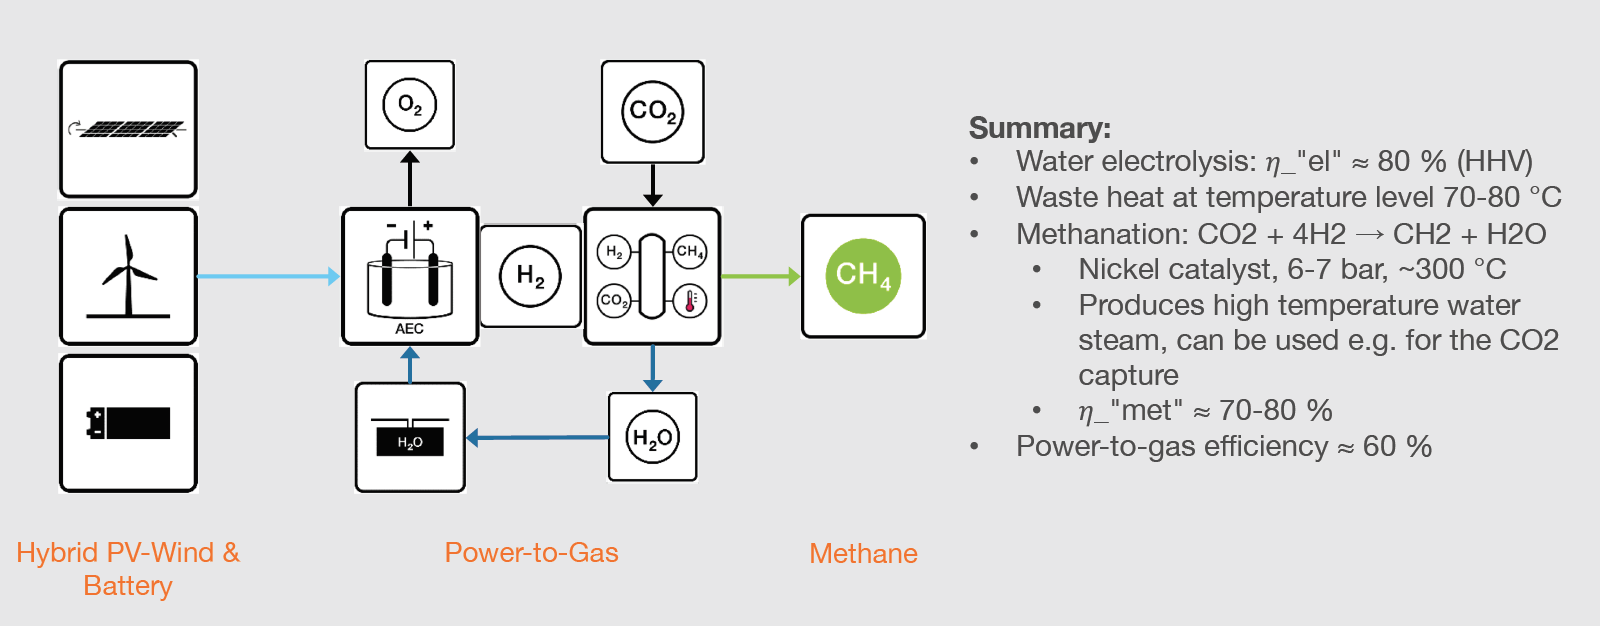 Synthetic fuels supporting Wartsilas vision of a 100 percent renewable energy future2